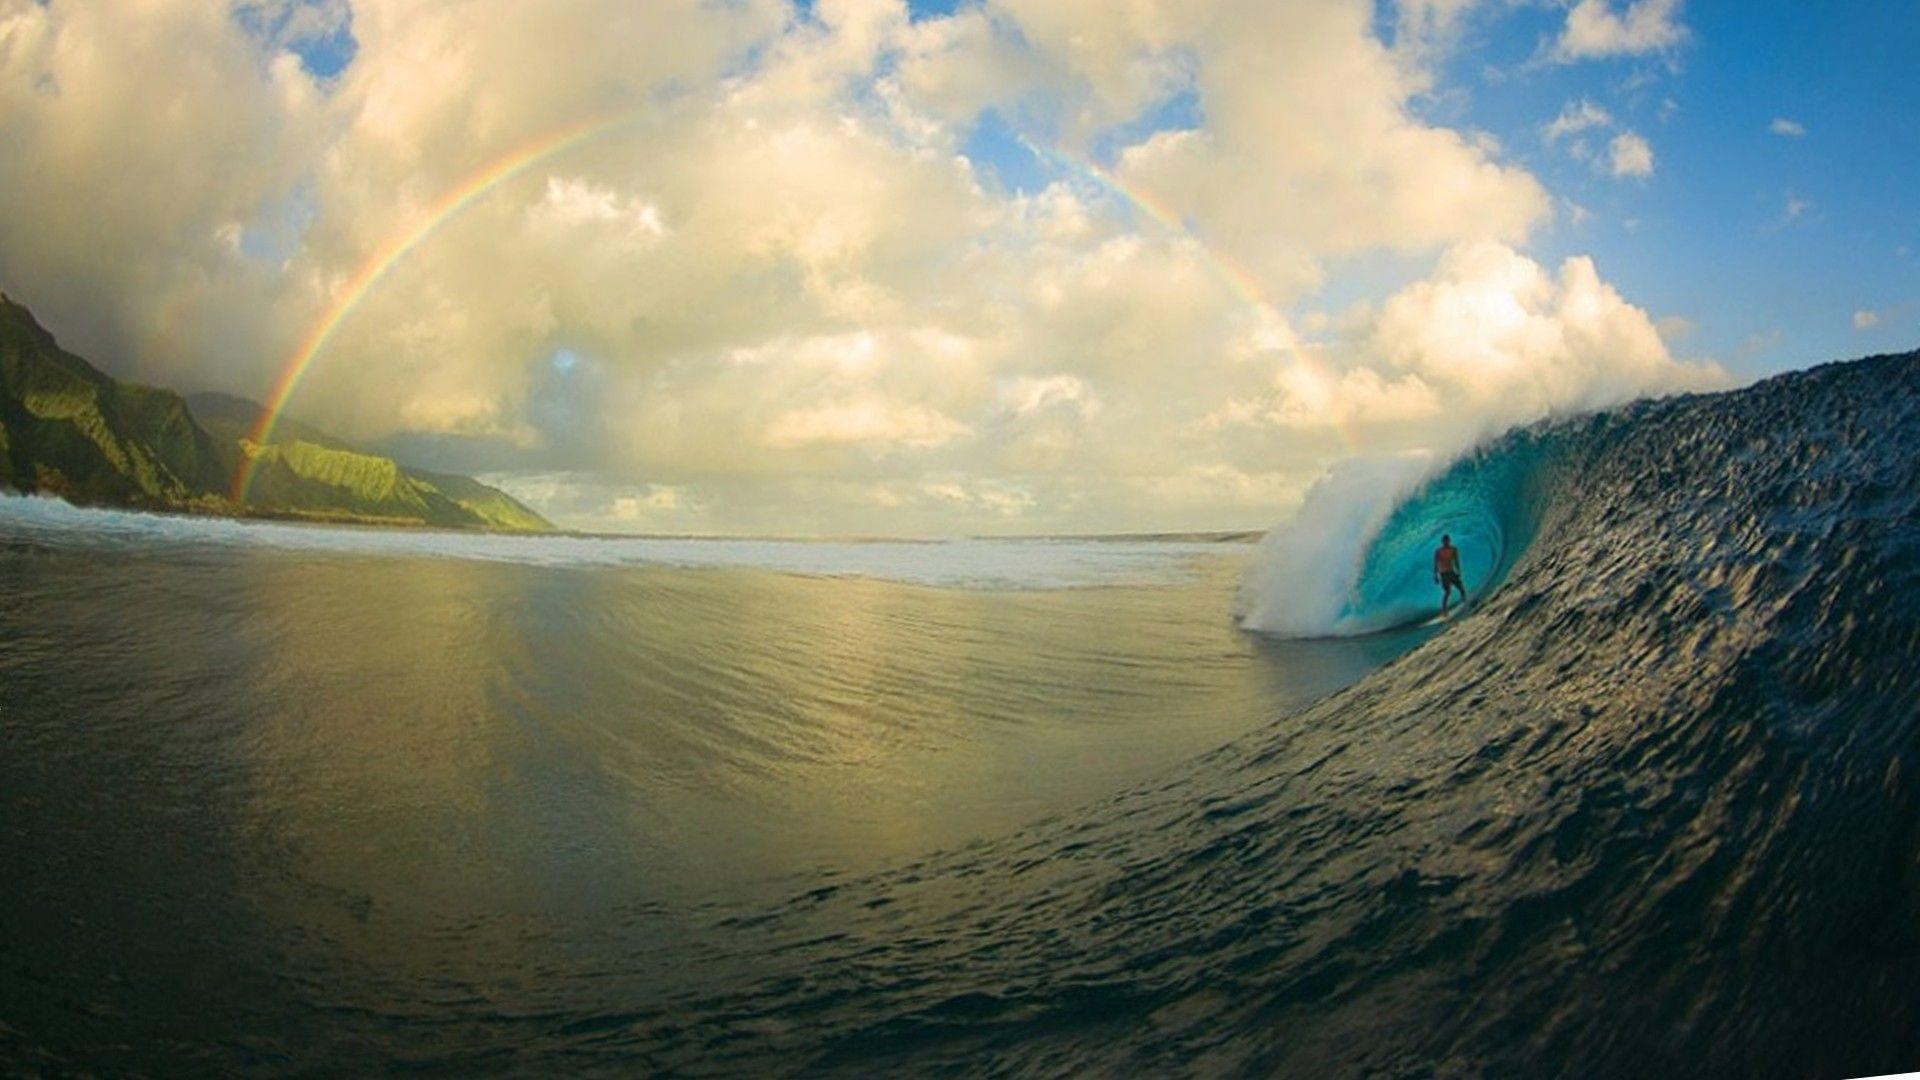 surfing wallpaper full hd - photo #5